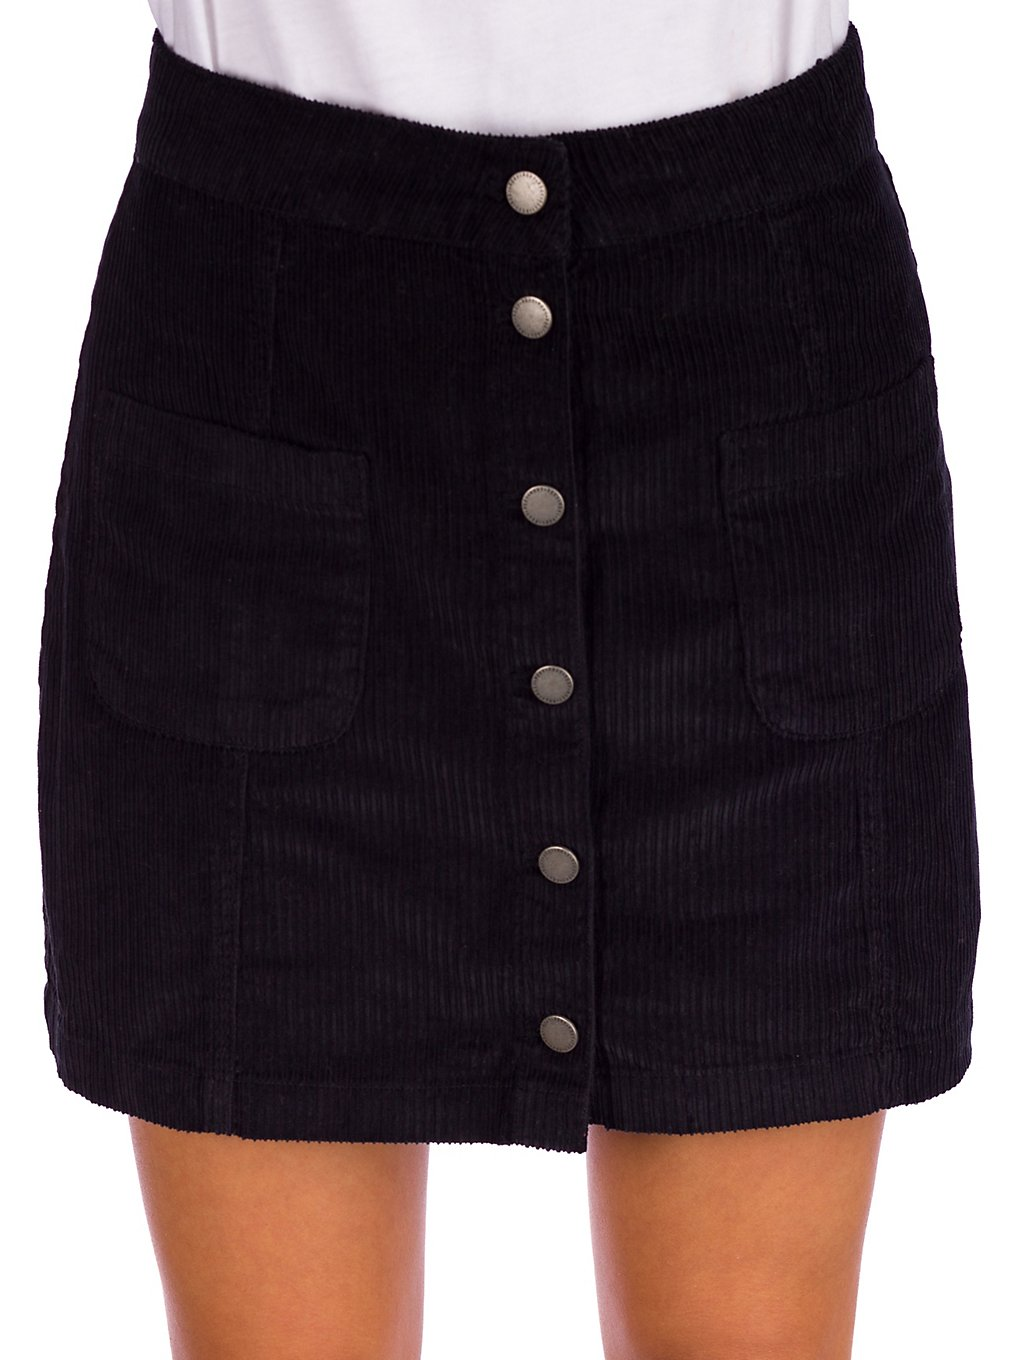 Roxy Warning Sign Skirt anthracite